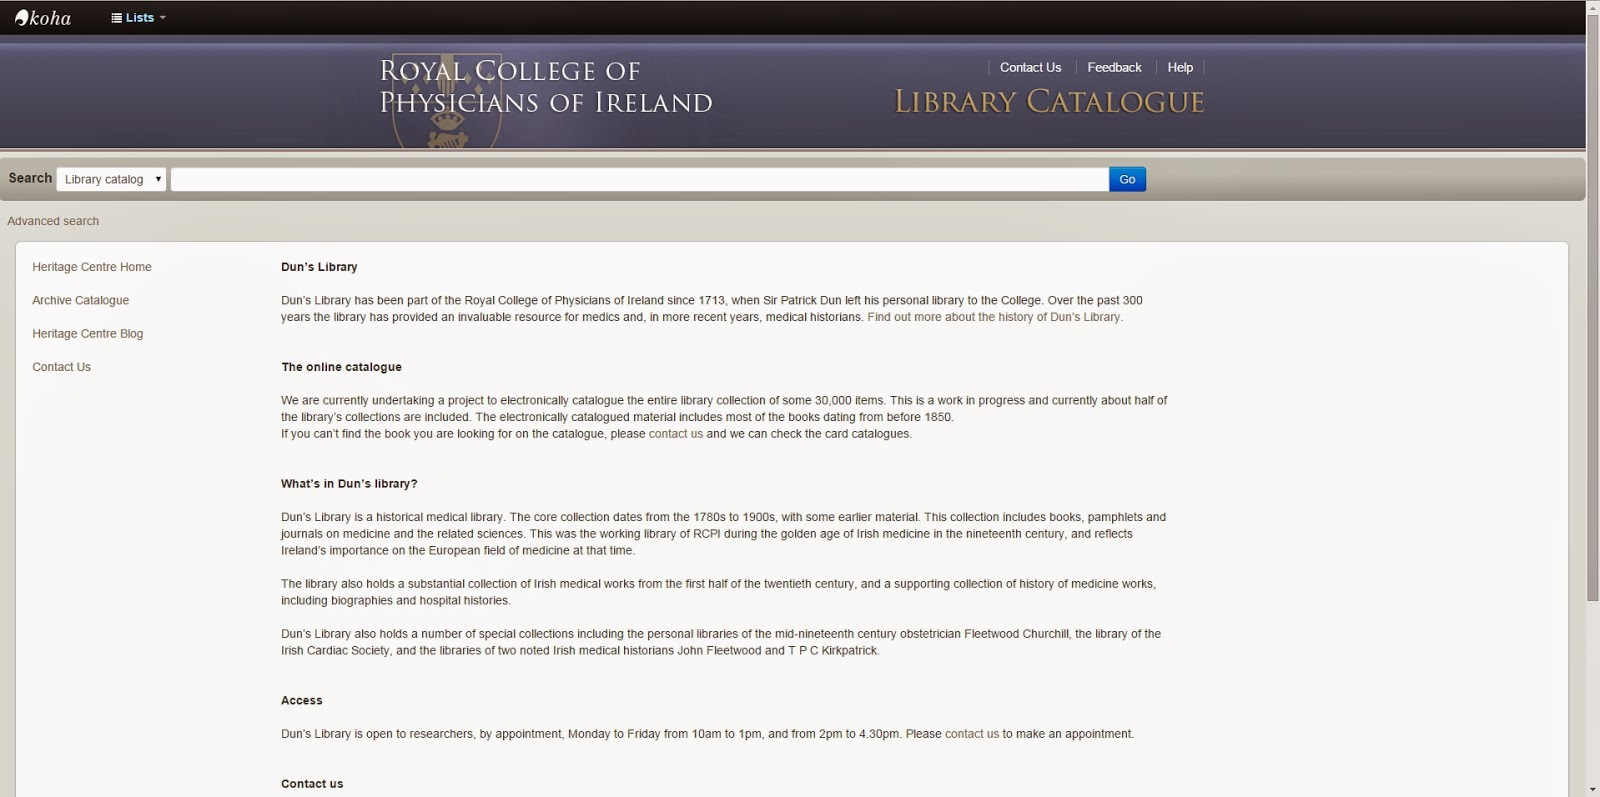 Upgrades to the RCPI's online library catalogue | RCPI Heritage